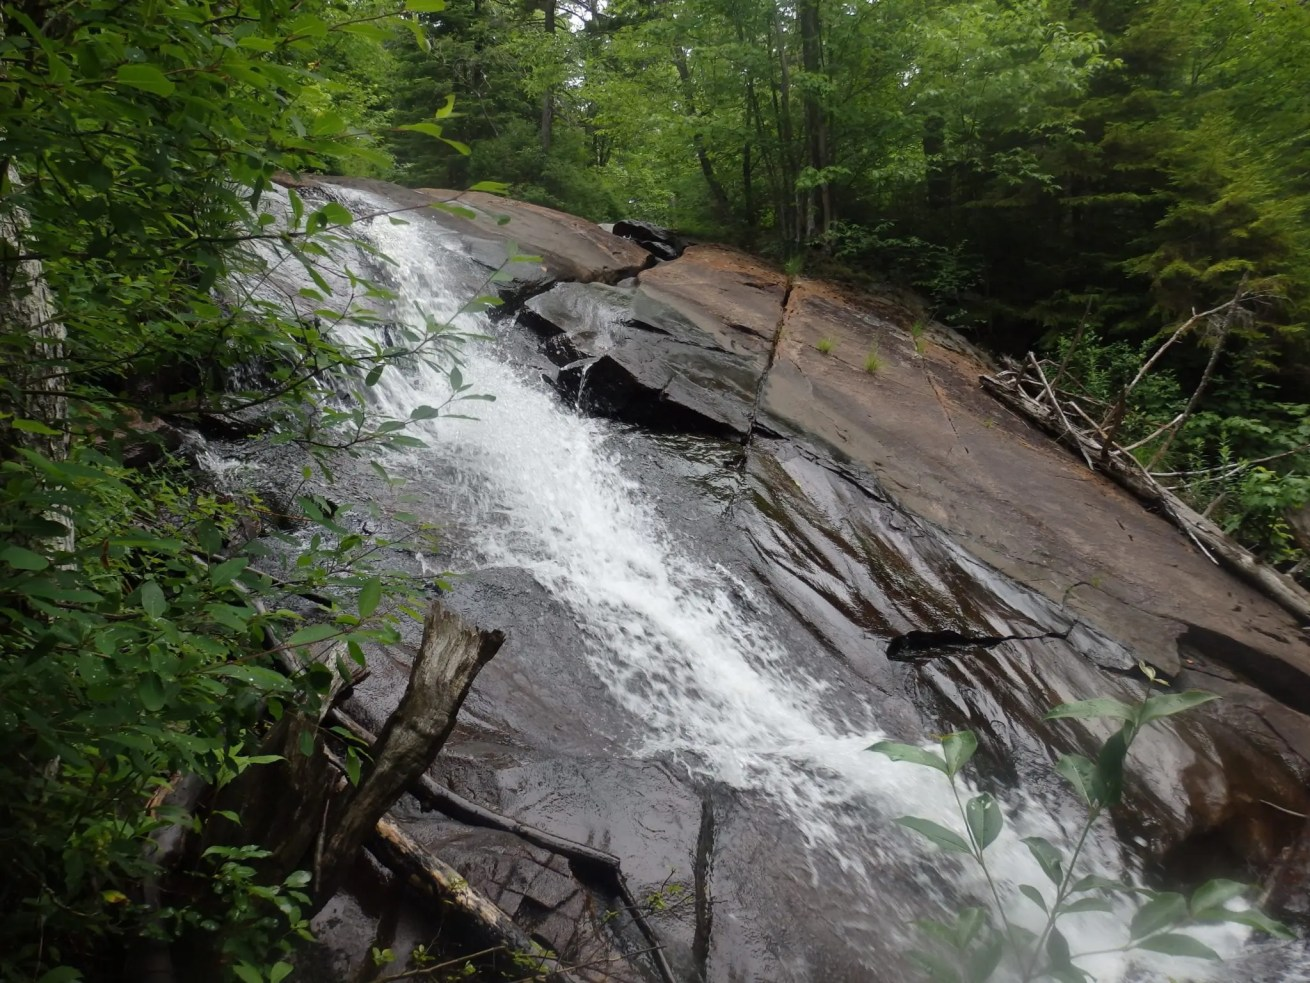 Twitchell Creek Falls and Cascades, Herkimer County, New York